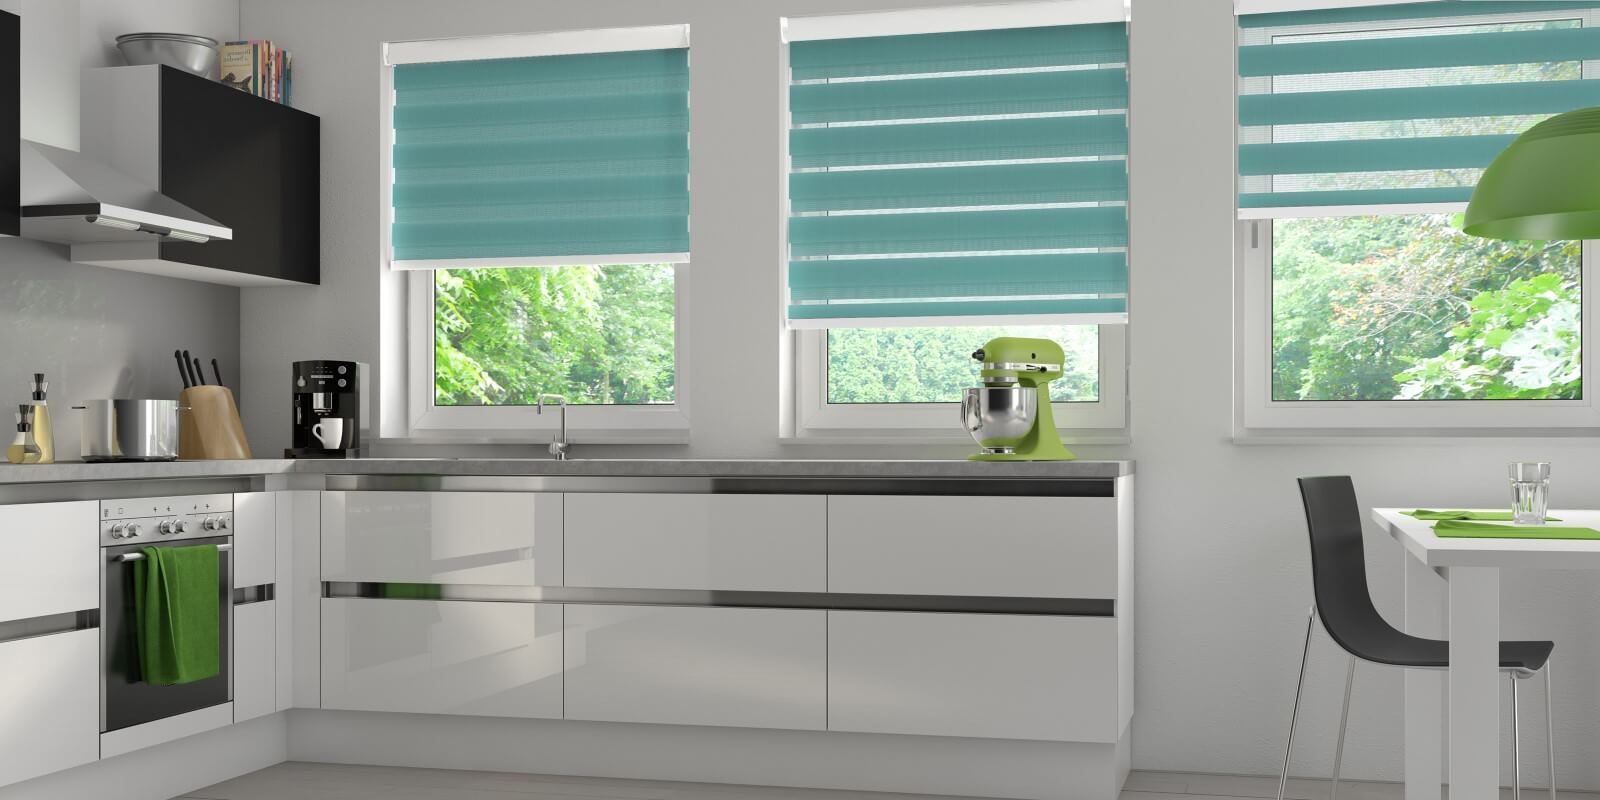 images/slider/mirage-blinds-006.jpg